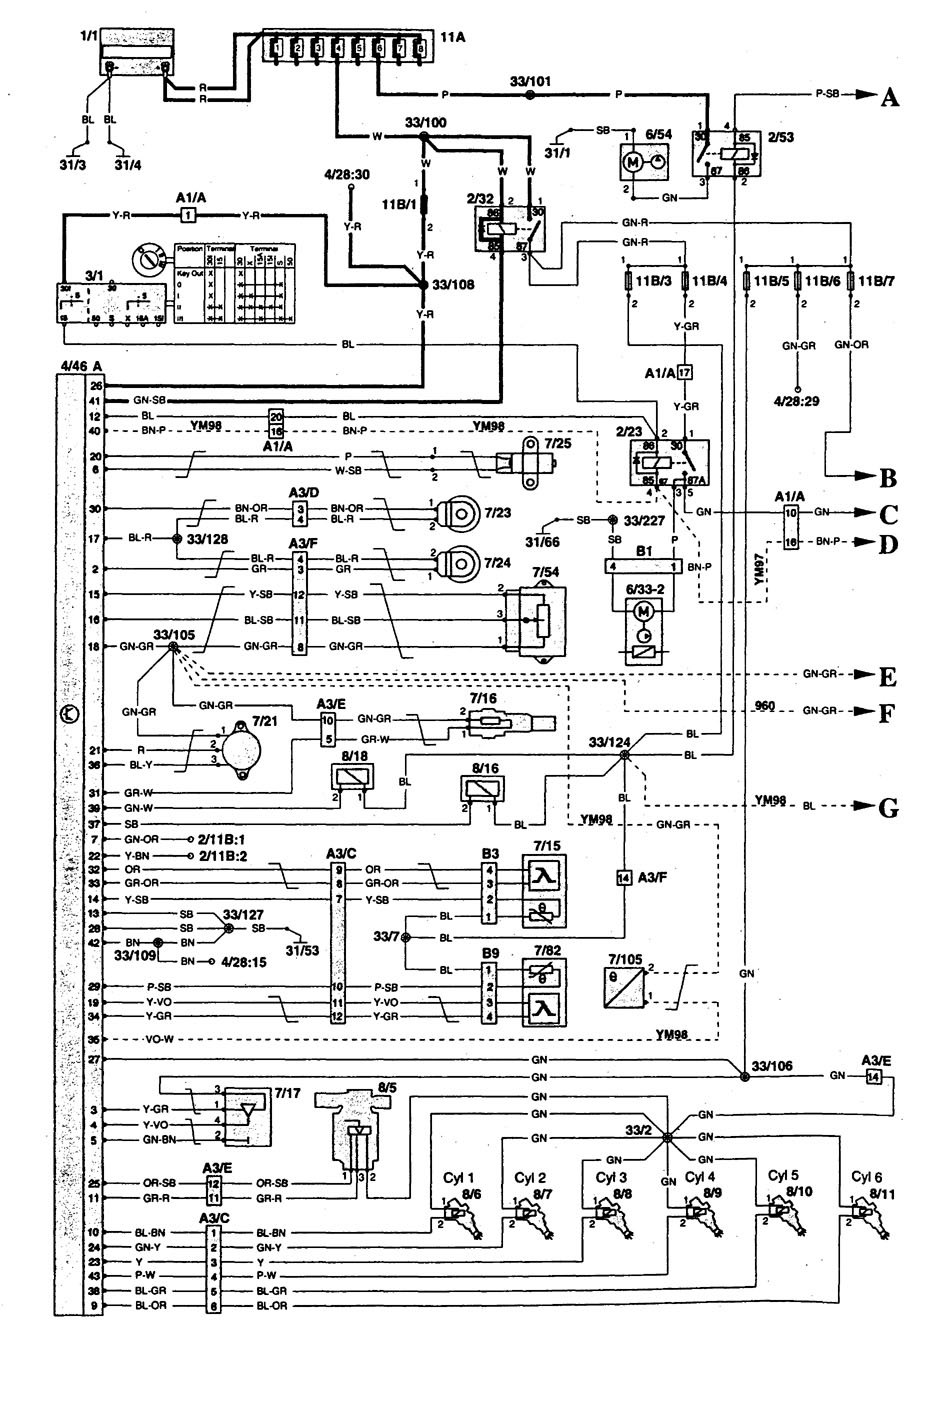 hight resolution of 1995 volvo 960 engine diagram wiring diagram volvo fuel pump wiring diagram 1995 volvo 940 wiring diagram